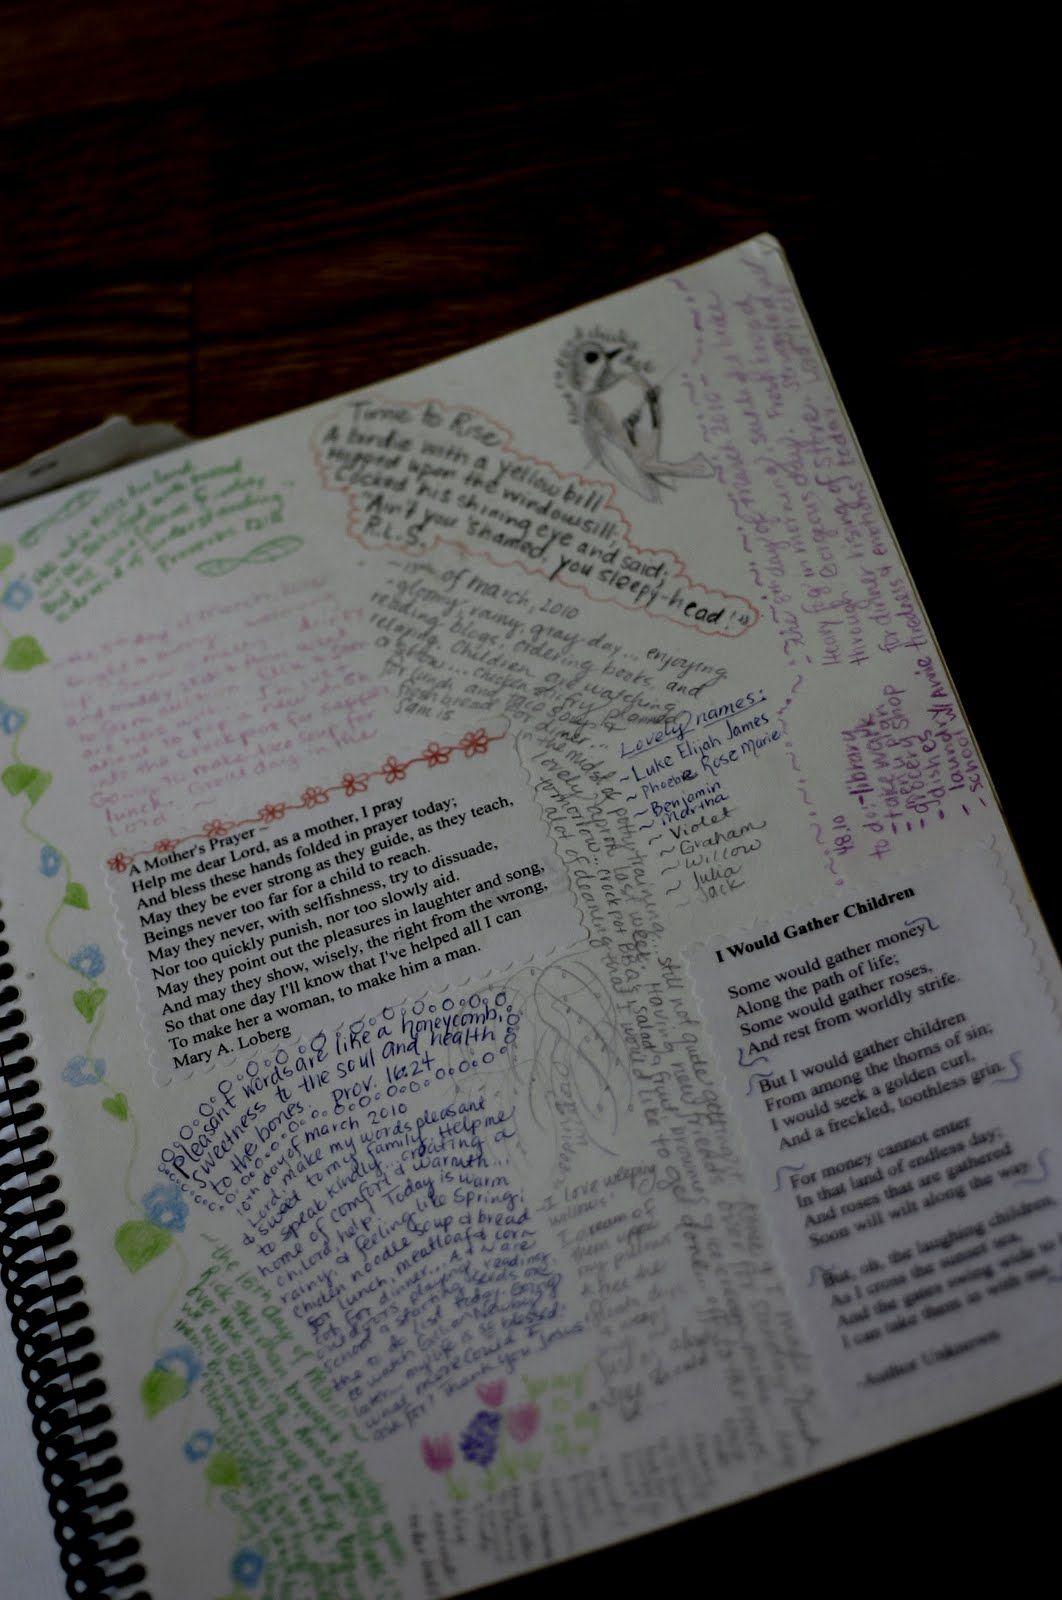 Commonplace books: How they are used today